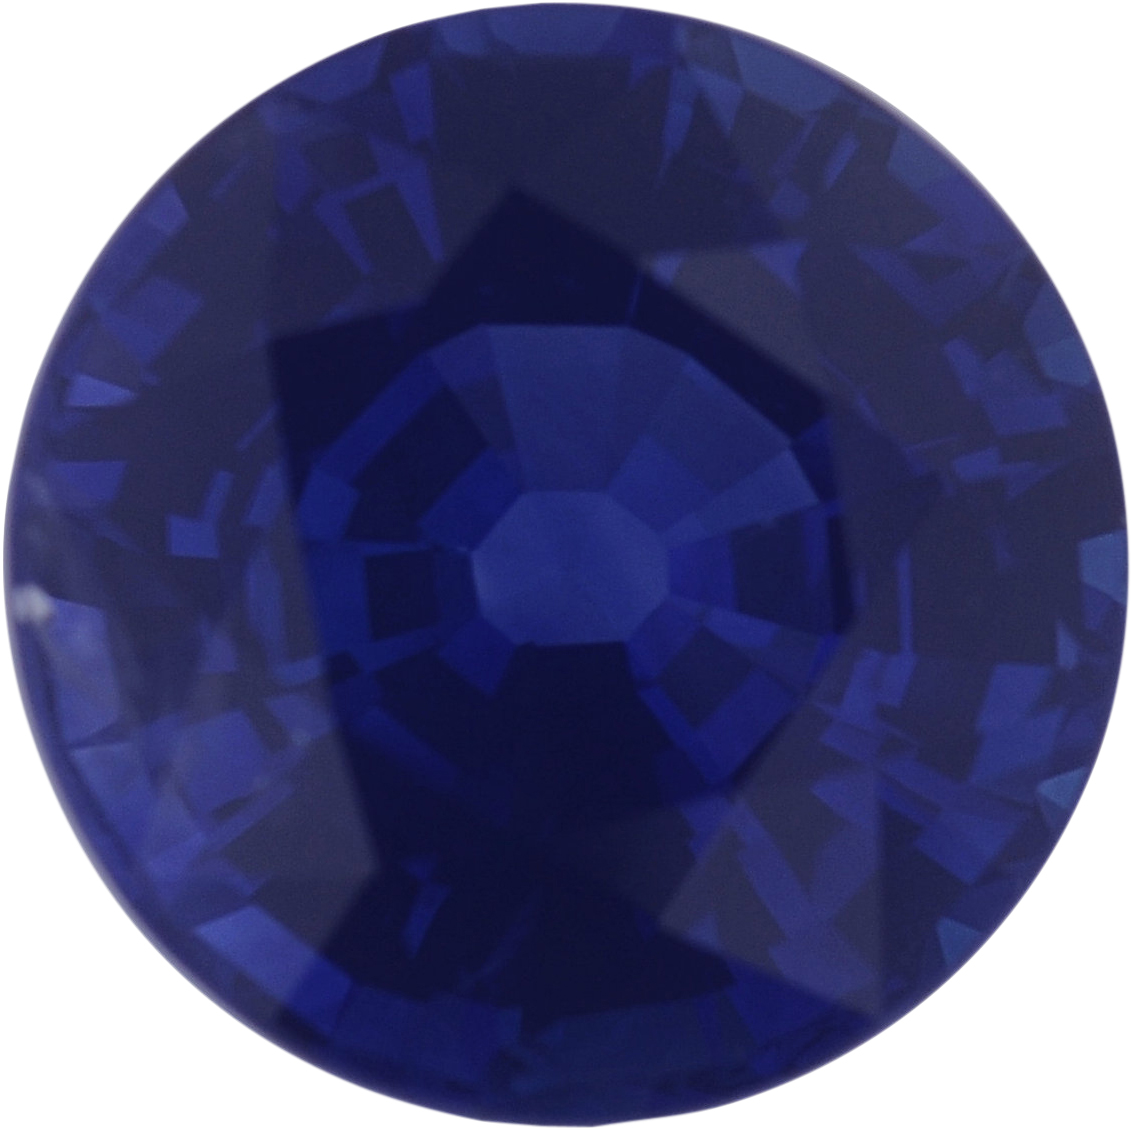 1.41 carats Blue Loose Sapphire Gemstone in Round Cut, 6.65 mm